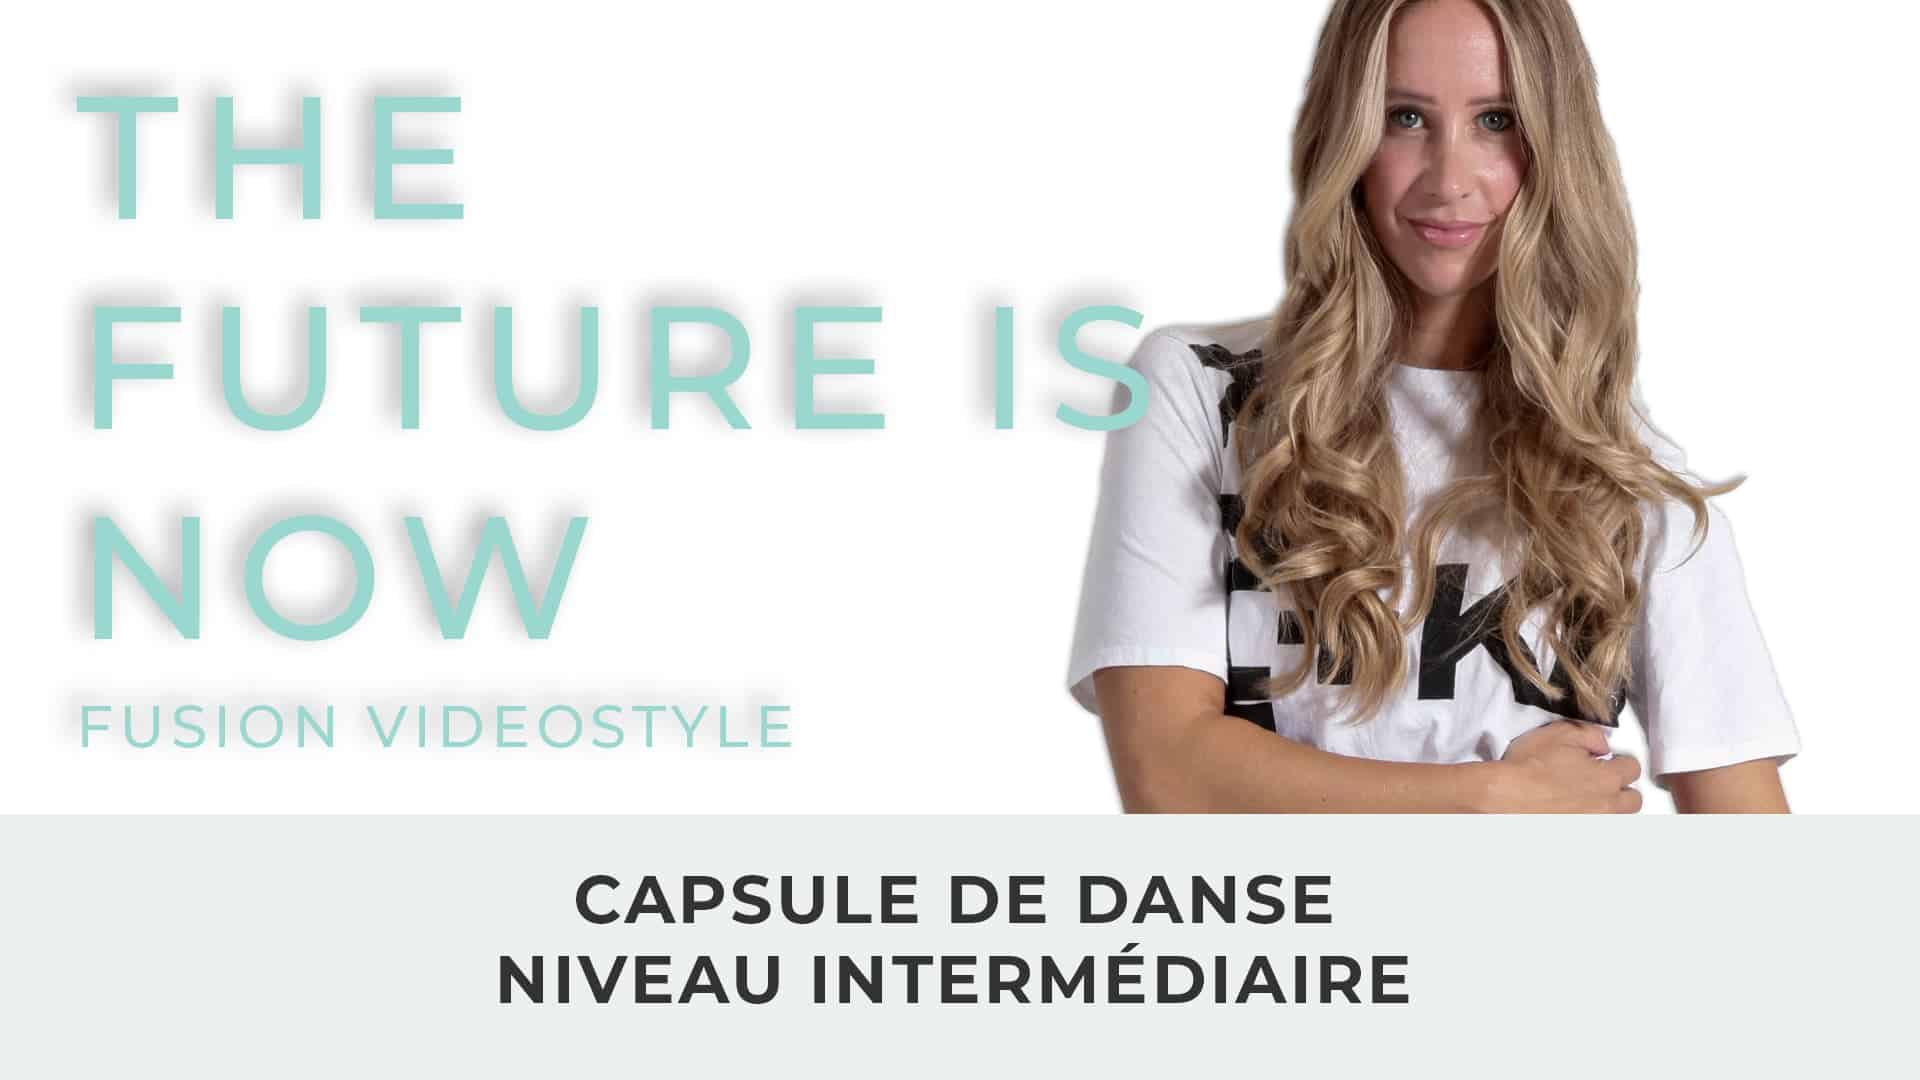 Julie Fortier // Fusion VideoStyle // The Future Is Now